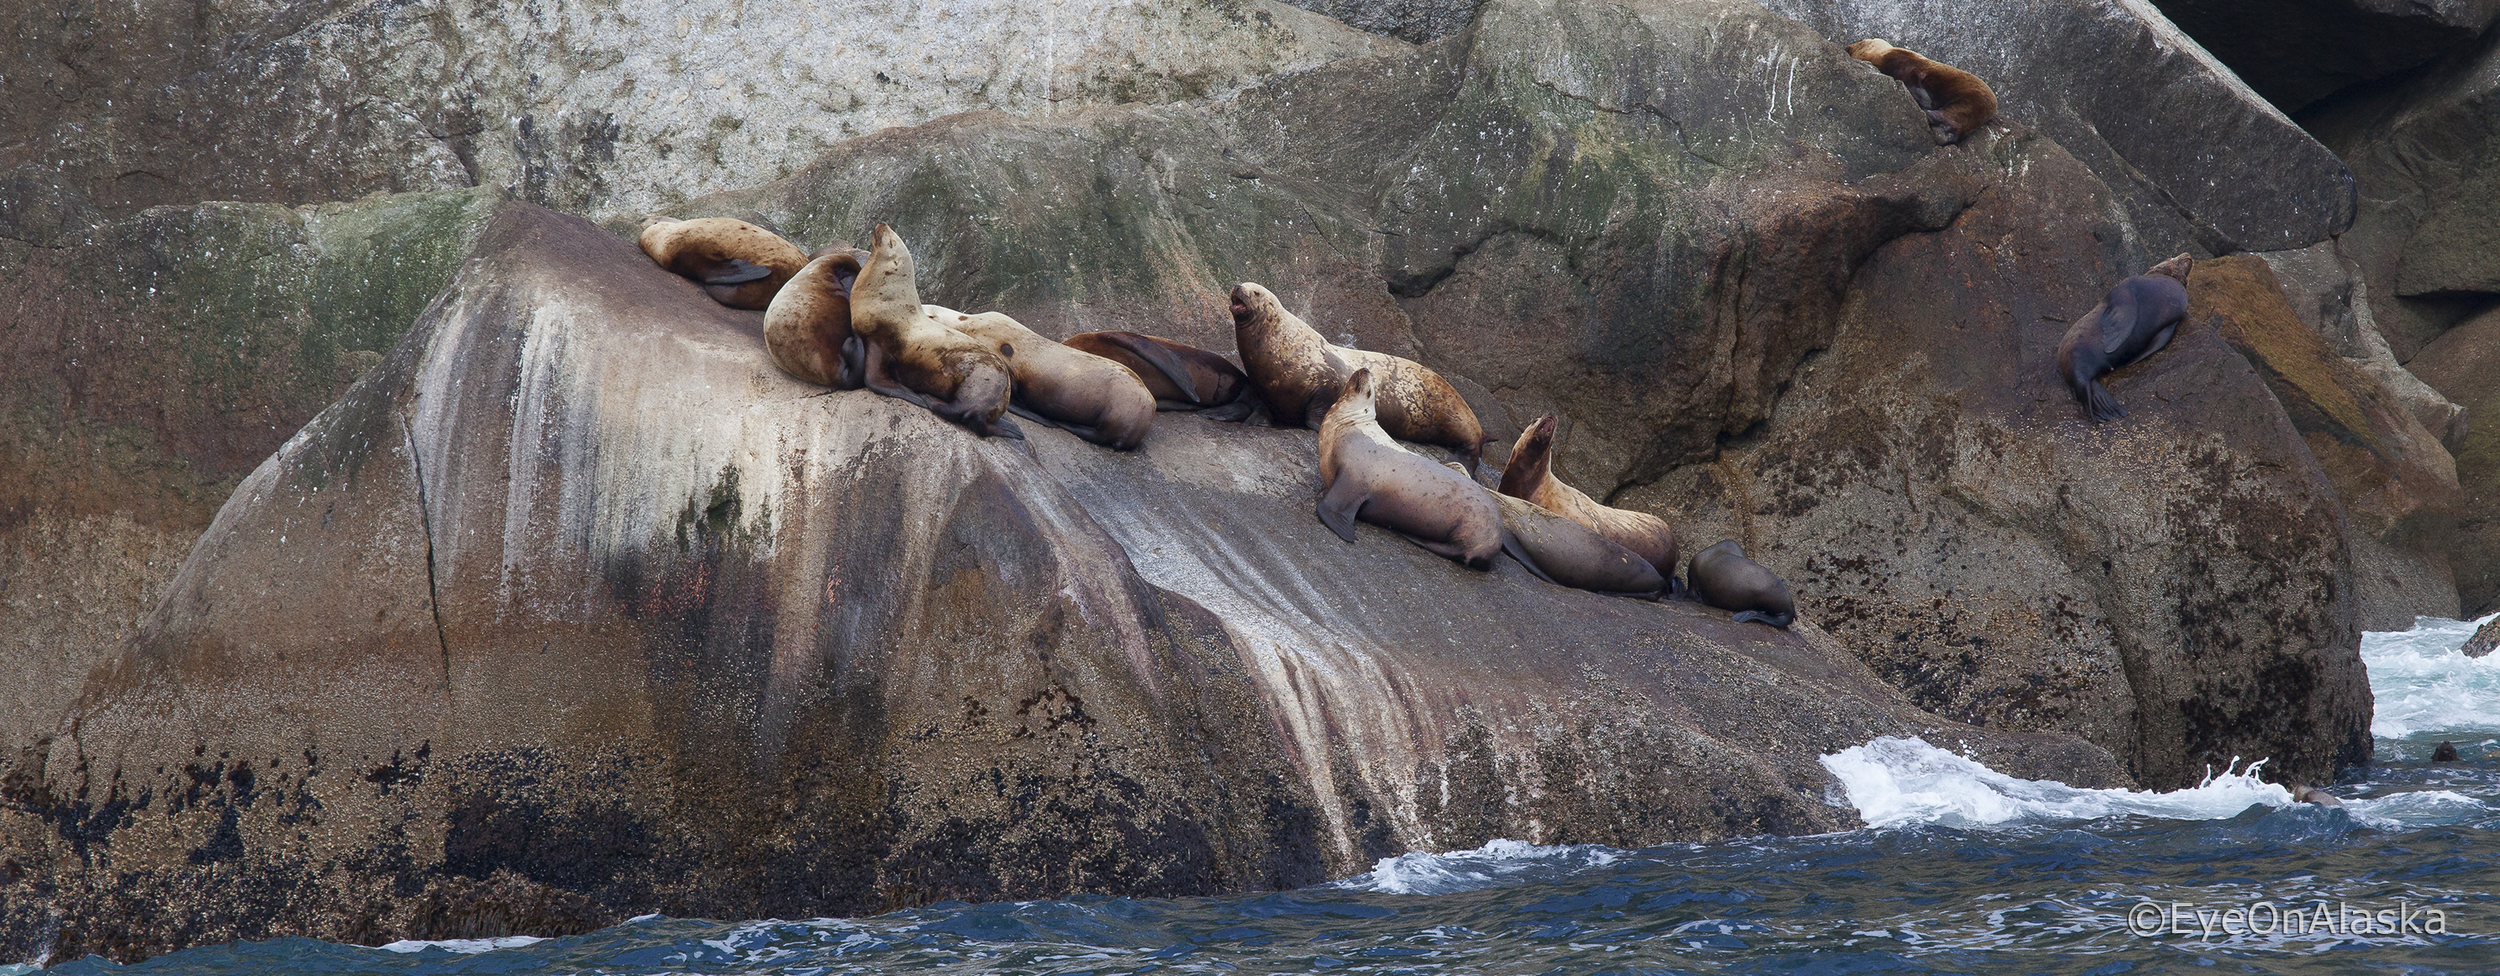 Sea lion haul-out, Kenai Fjords National Park.